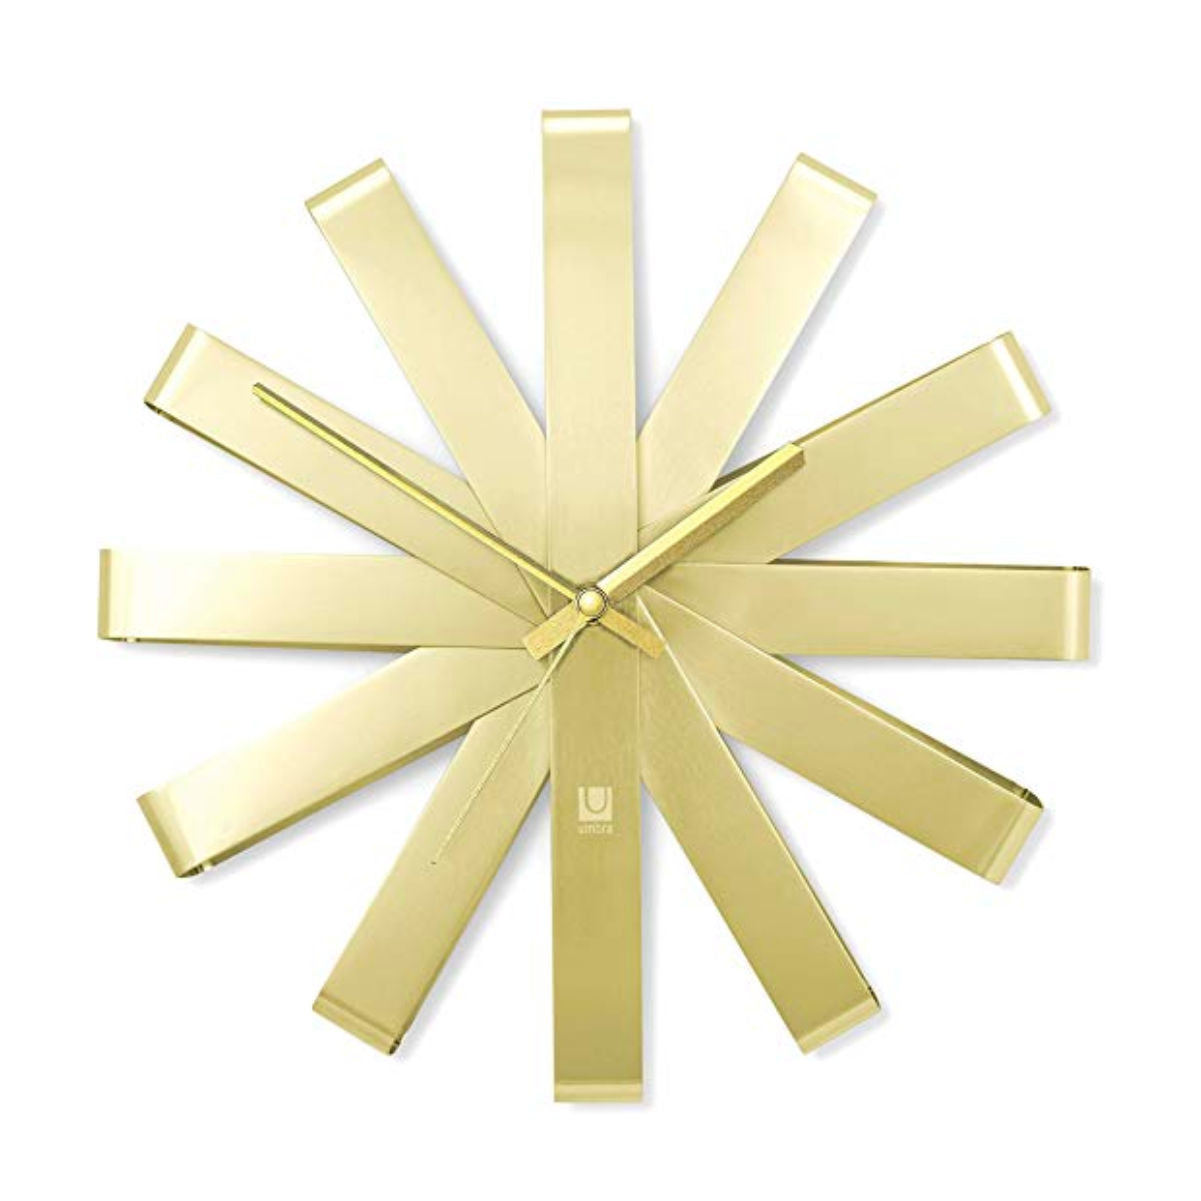 Umbra Ribbon wall clock, brass